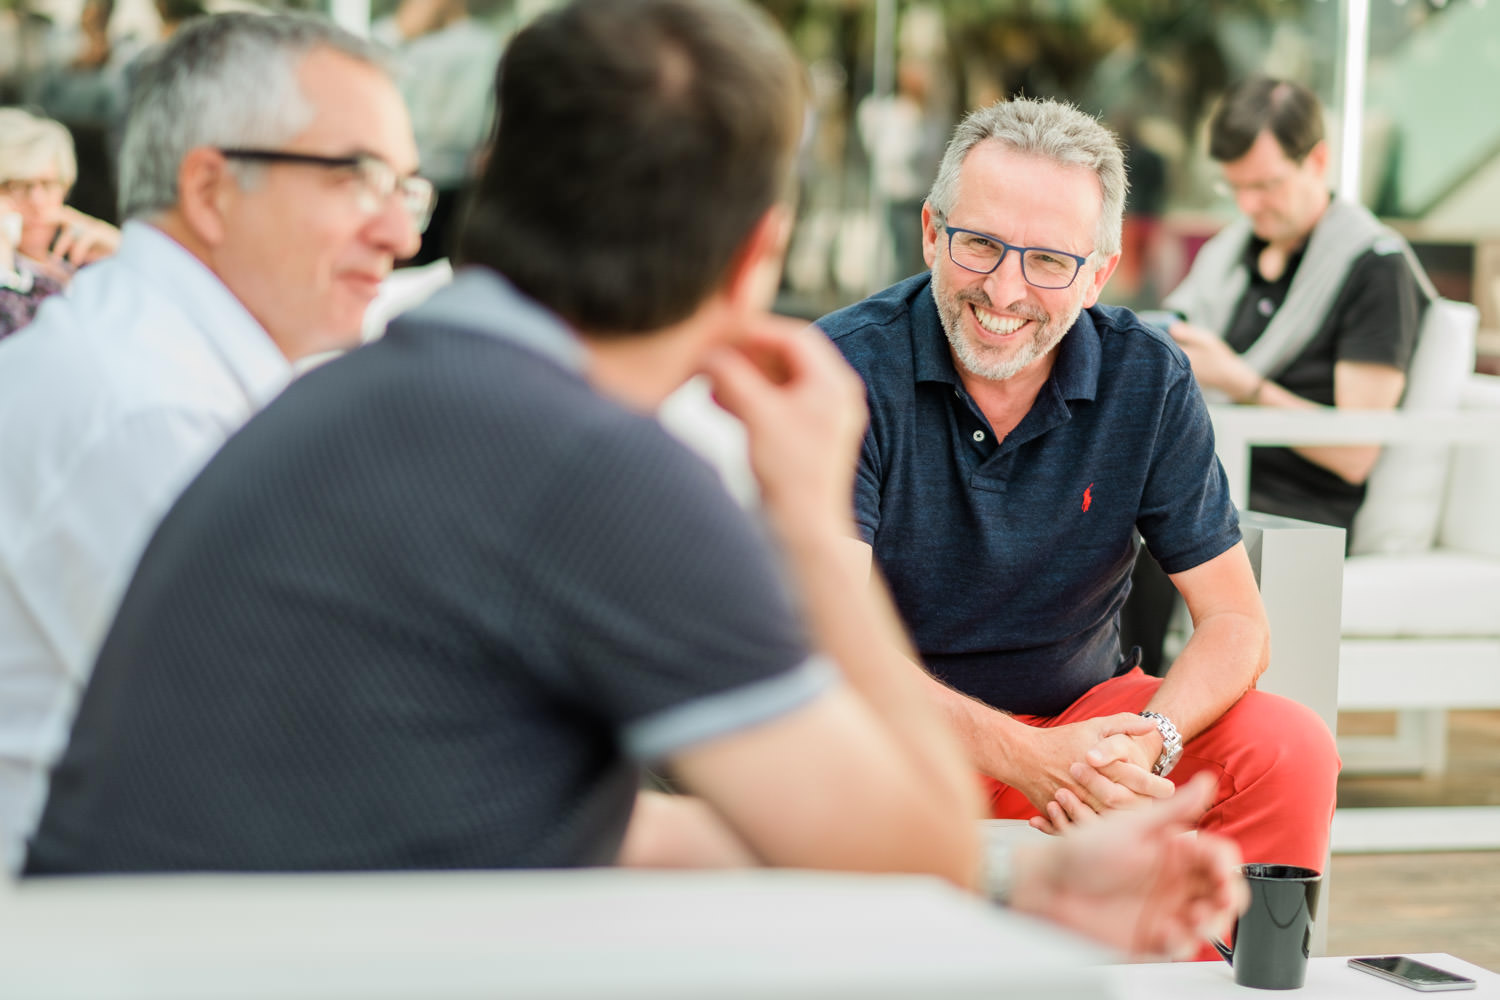 A photograph of 3 professional men, talking and smiling, at the KPMG event in the W Hotel, in Barcelona, Spain